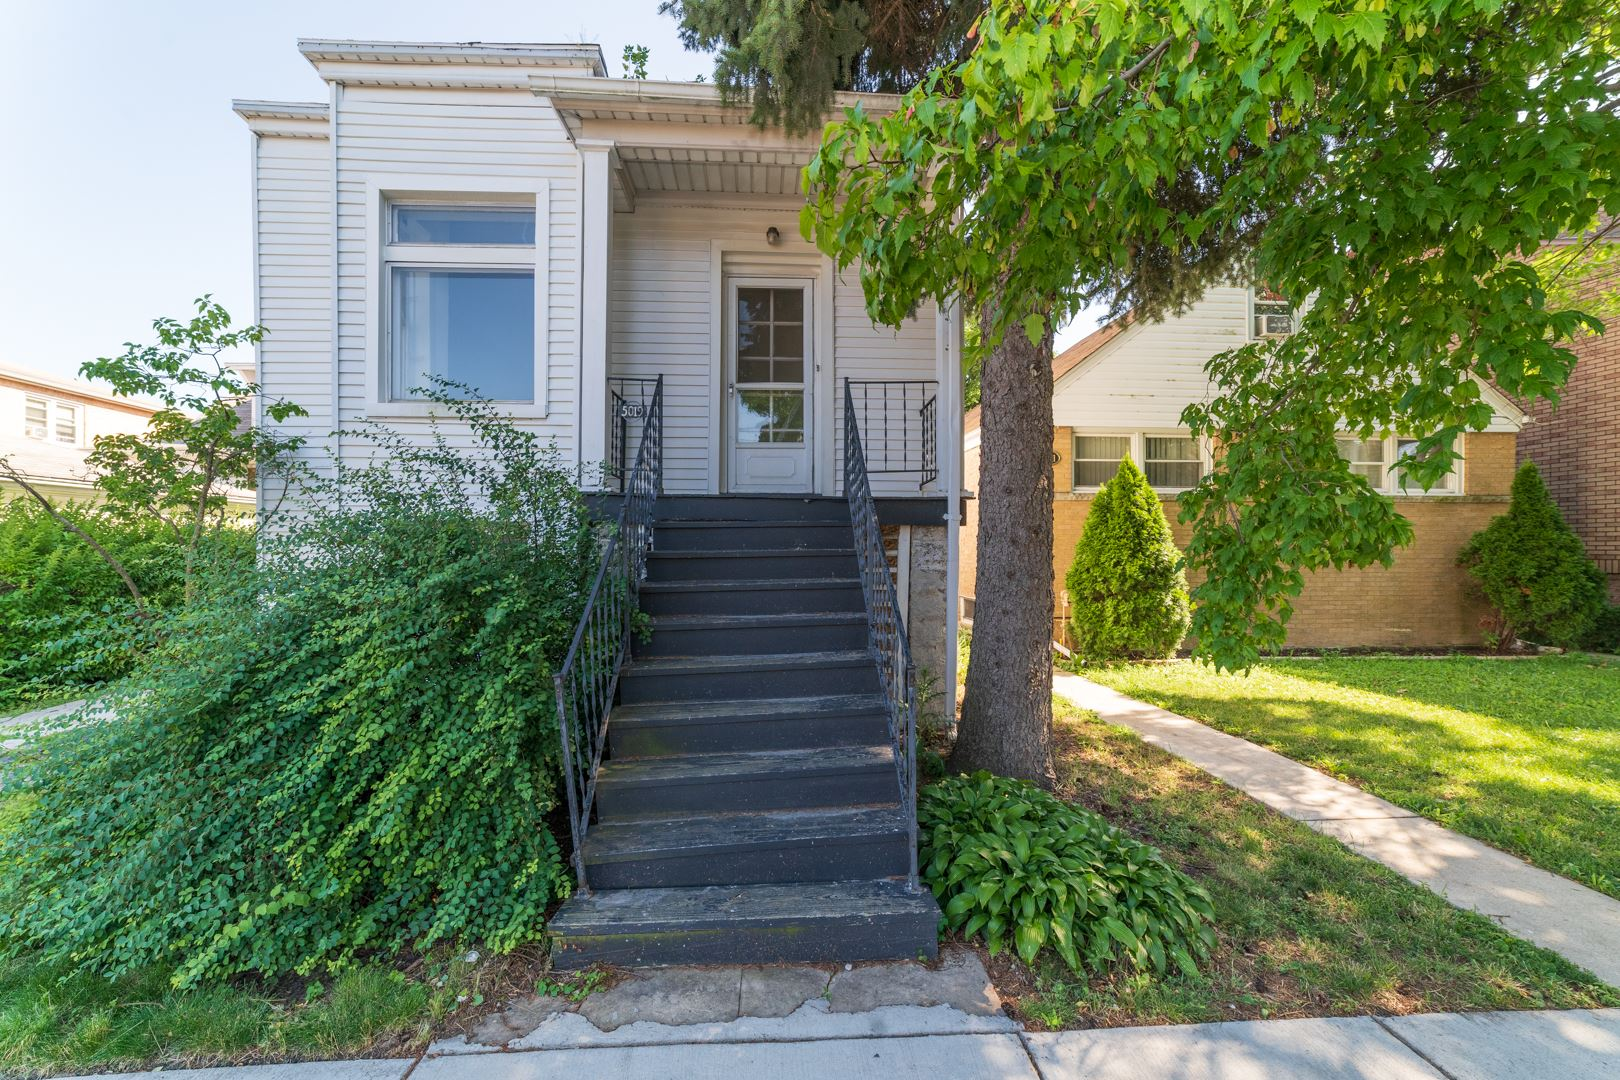 5019 W CORNELIA Avenue, Chicago, IL 60641 - #: 10680050